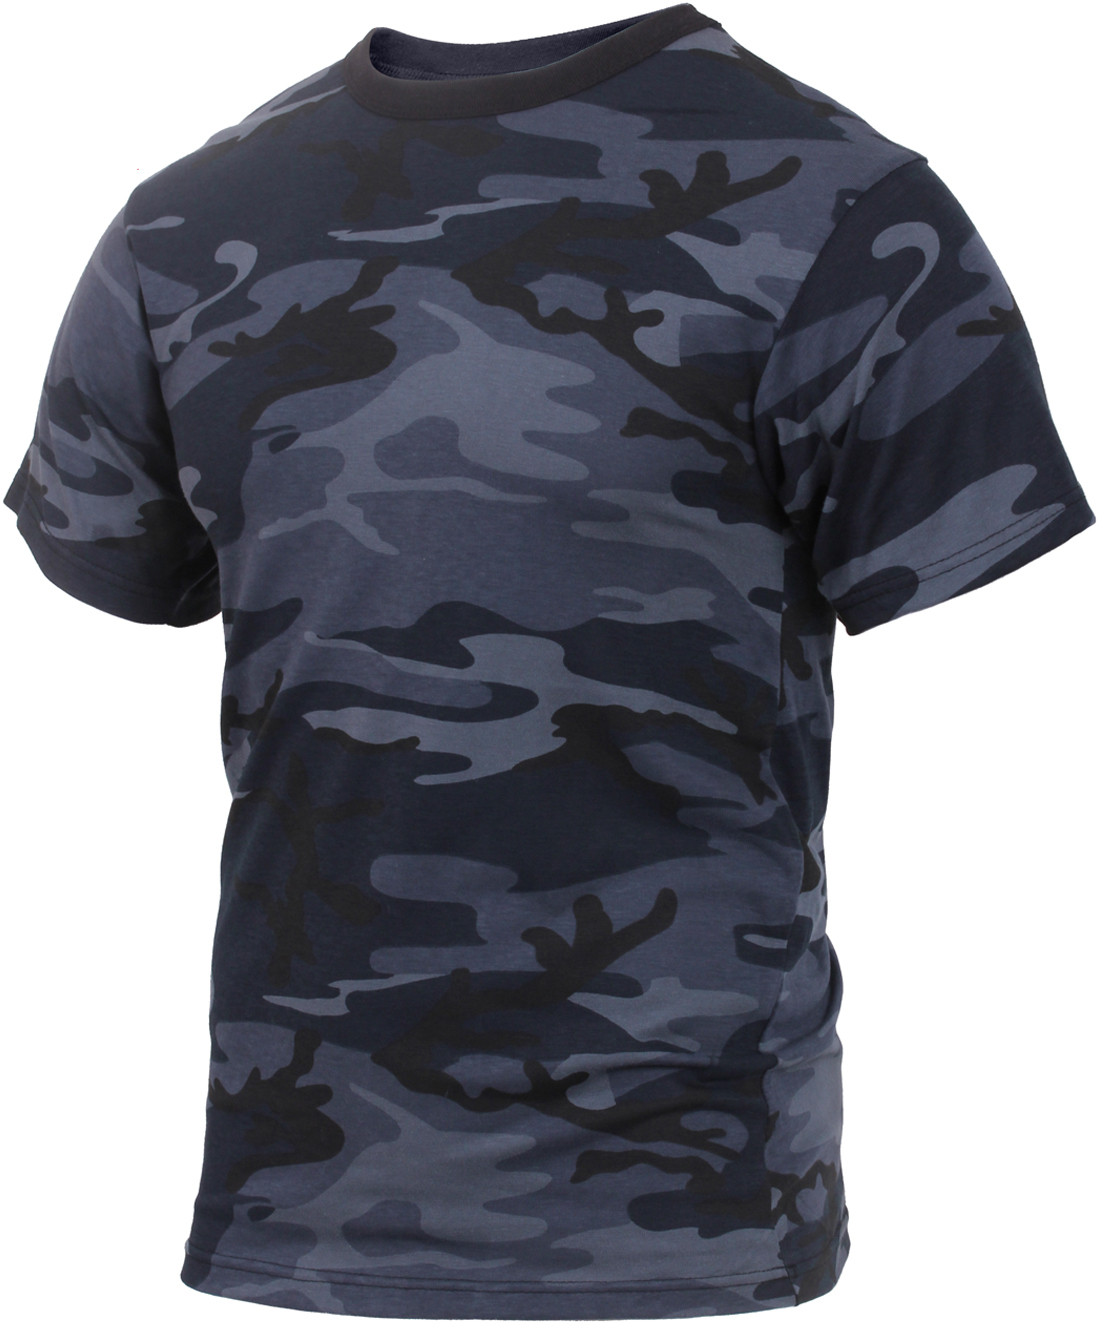 Midnight Blue Camouflage Military Short Sleeve T-Shirt 0f004d21a39